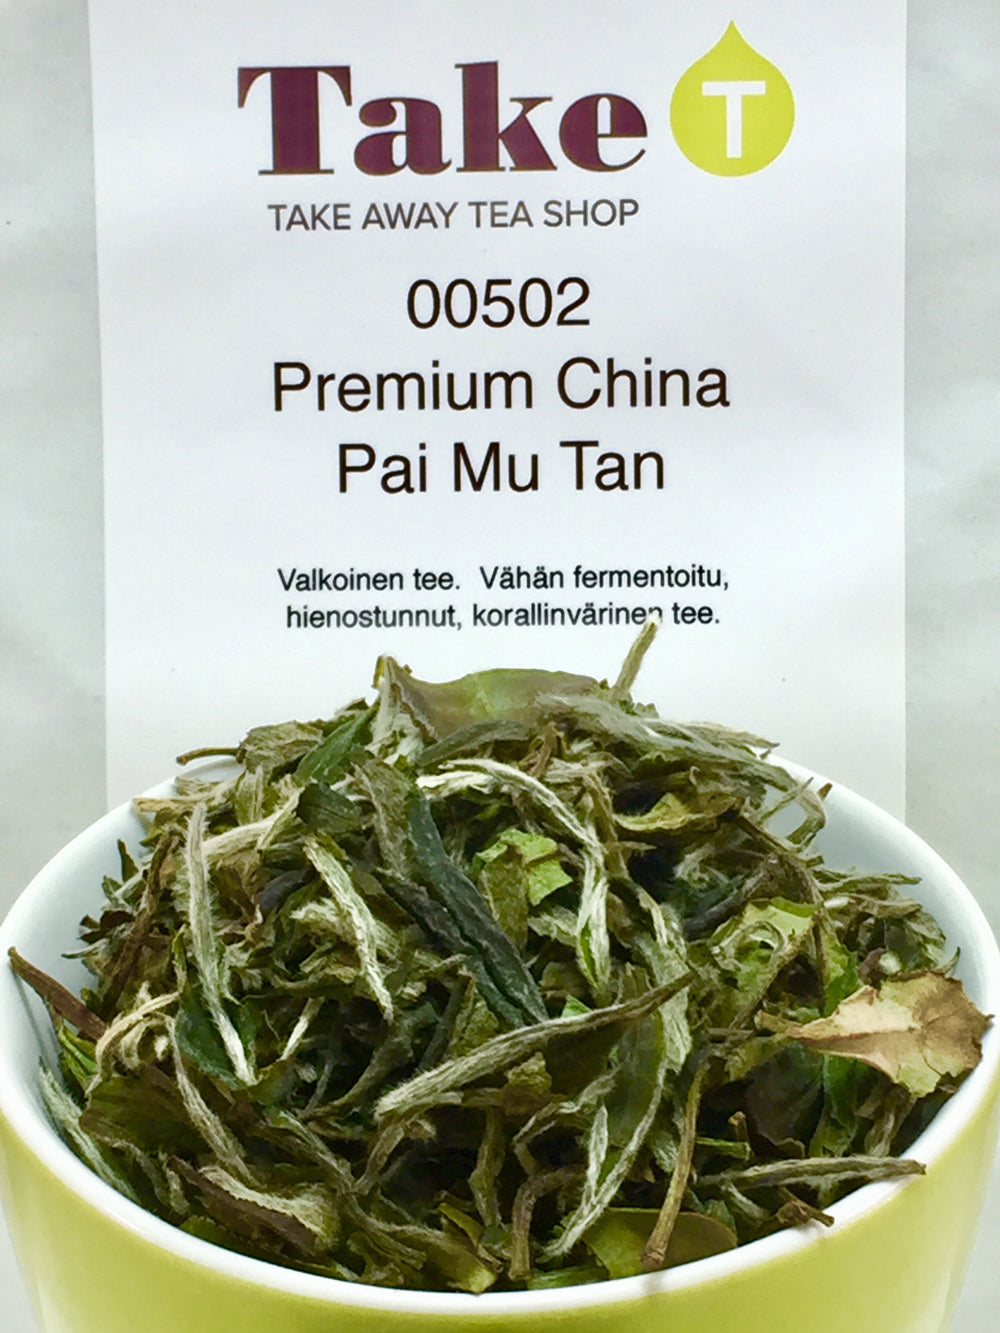 Premium China Pai Mu Tan